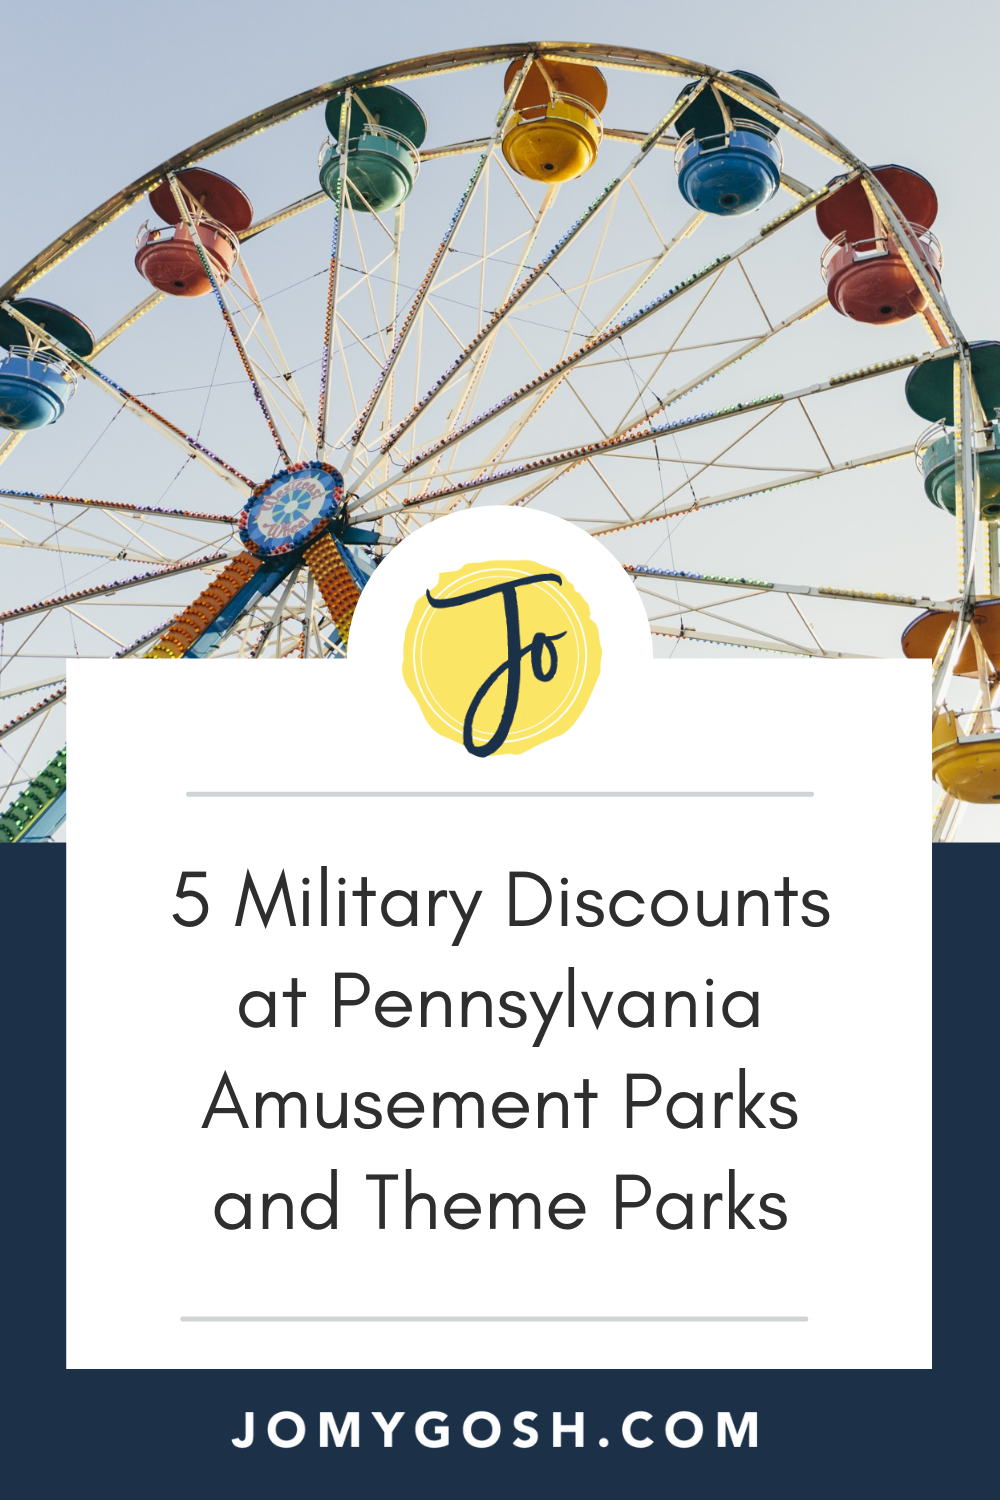 Whether you're daytripping or vacationing, make sure that you seek out a military discount at one (or more) of these five PA amusement parks and theme parks! #militarydiscount #militaryfamily #milfam #saving #budgeting #travel #budgettravel #freebies #militaryspouse #milspouse #milspo #milspos #discounts #savingmoney #amusementpark #themepark #cheapfun